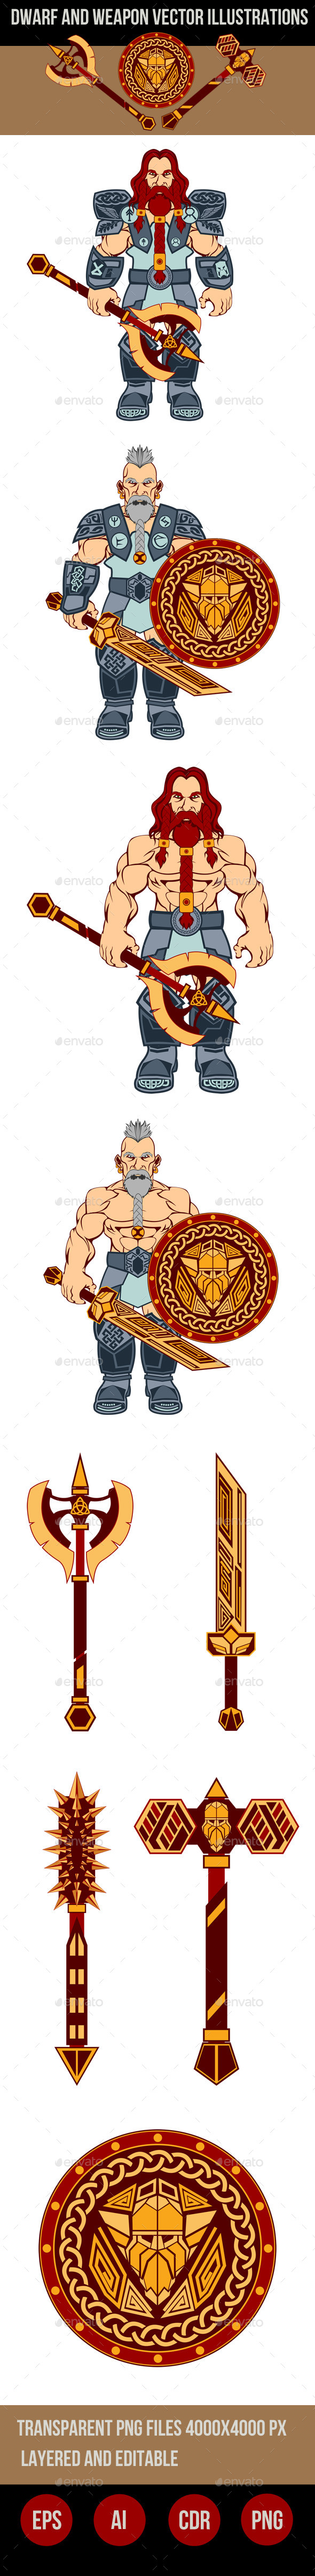 Dwarfs and Weapons Vector Illustrations - Characters Vectors